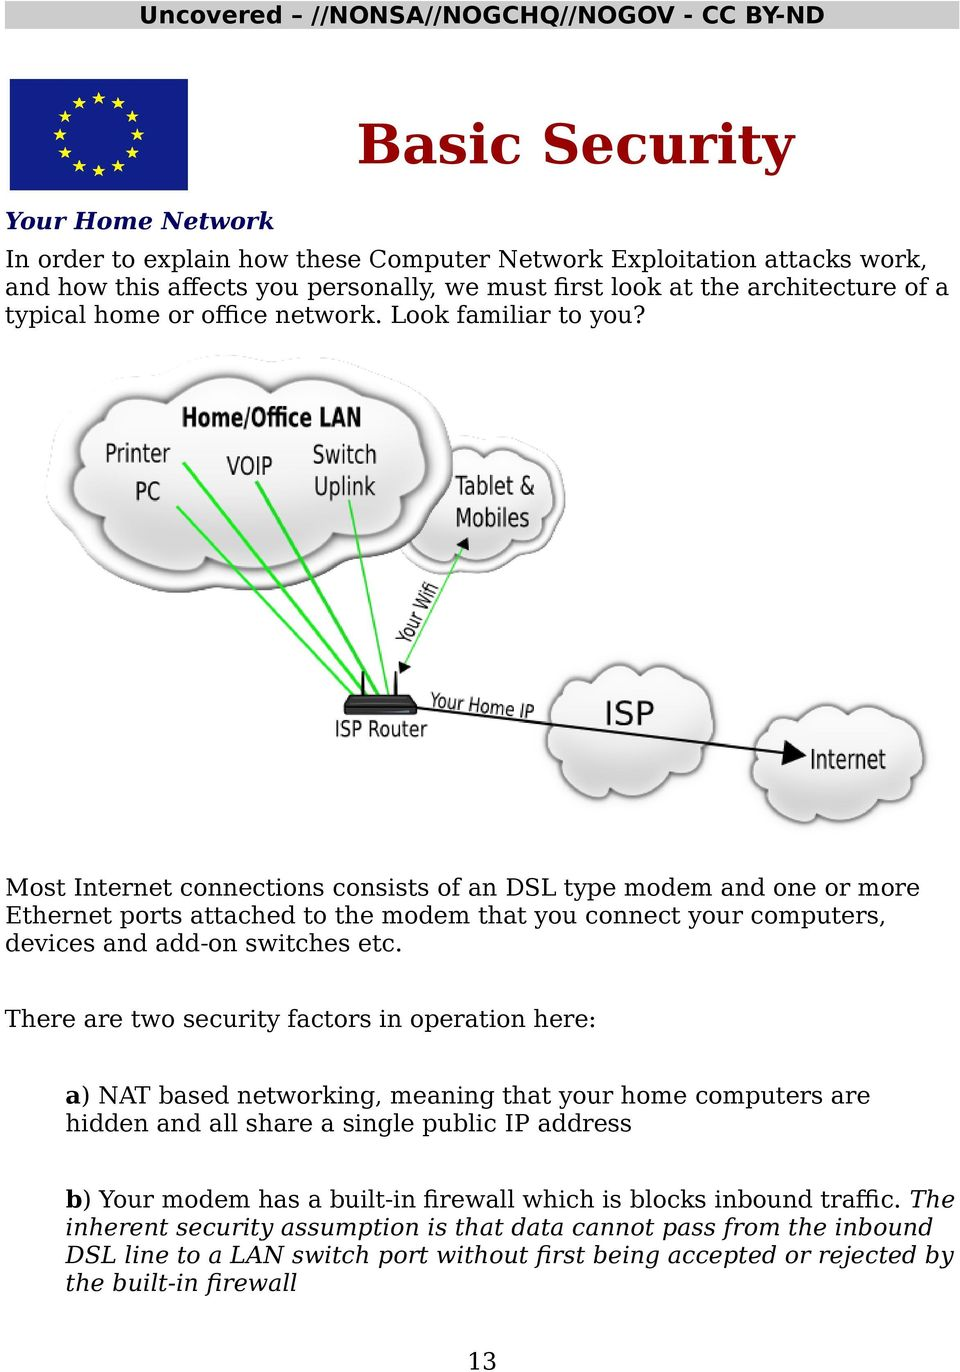 Most Internet connections consists of an DSL type modem and one or more Ethernet ports attached to the modem that you connect your computers, devices and add-on switches etc.